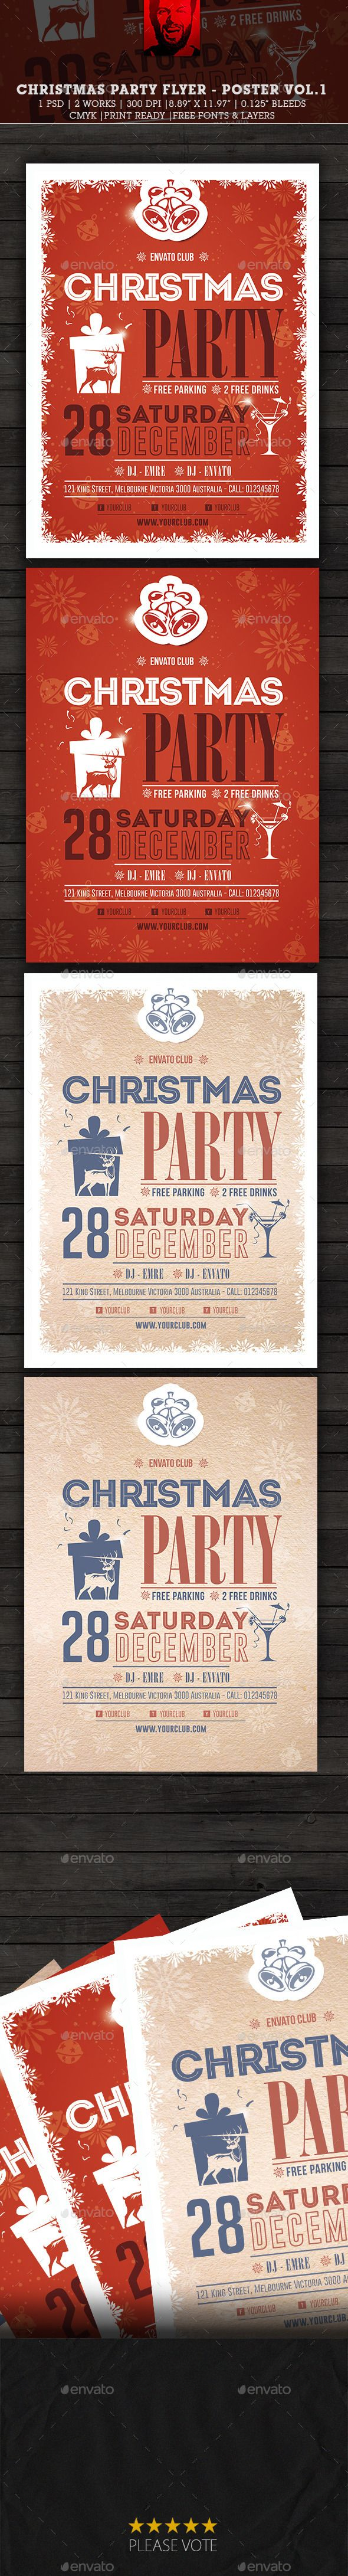 best images about merry christmas flyer template christmas party flyer poster template psd design xmas